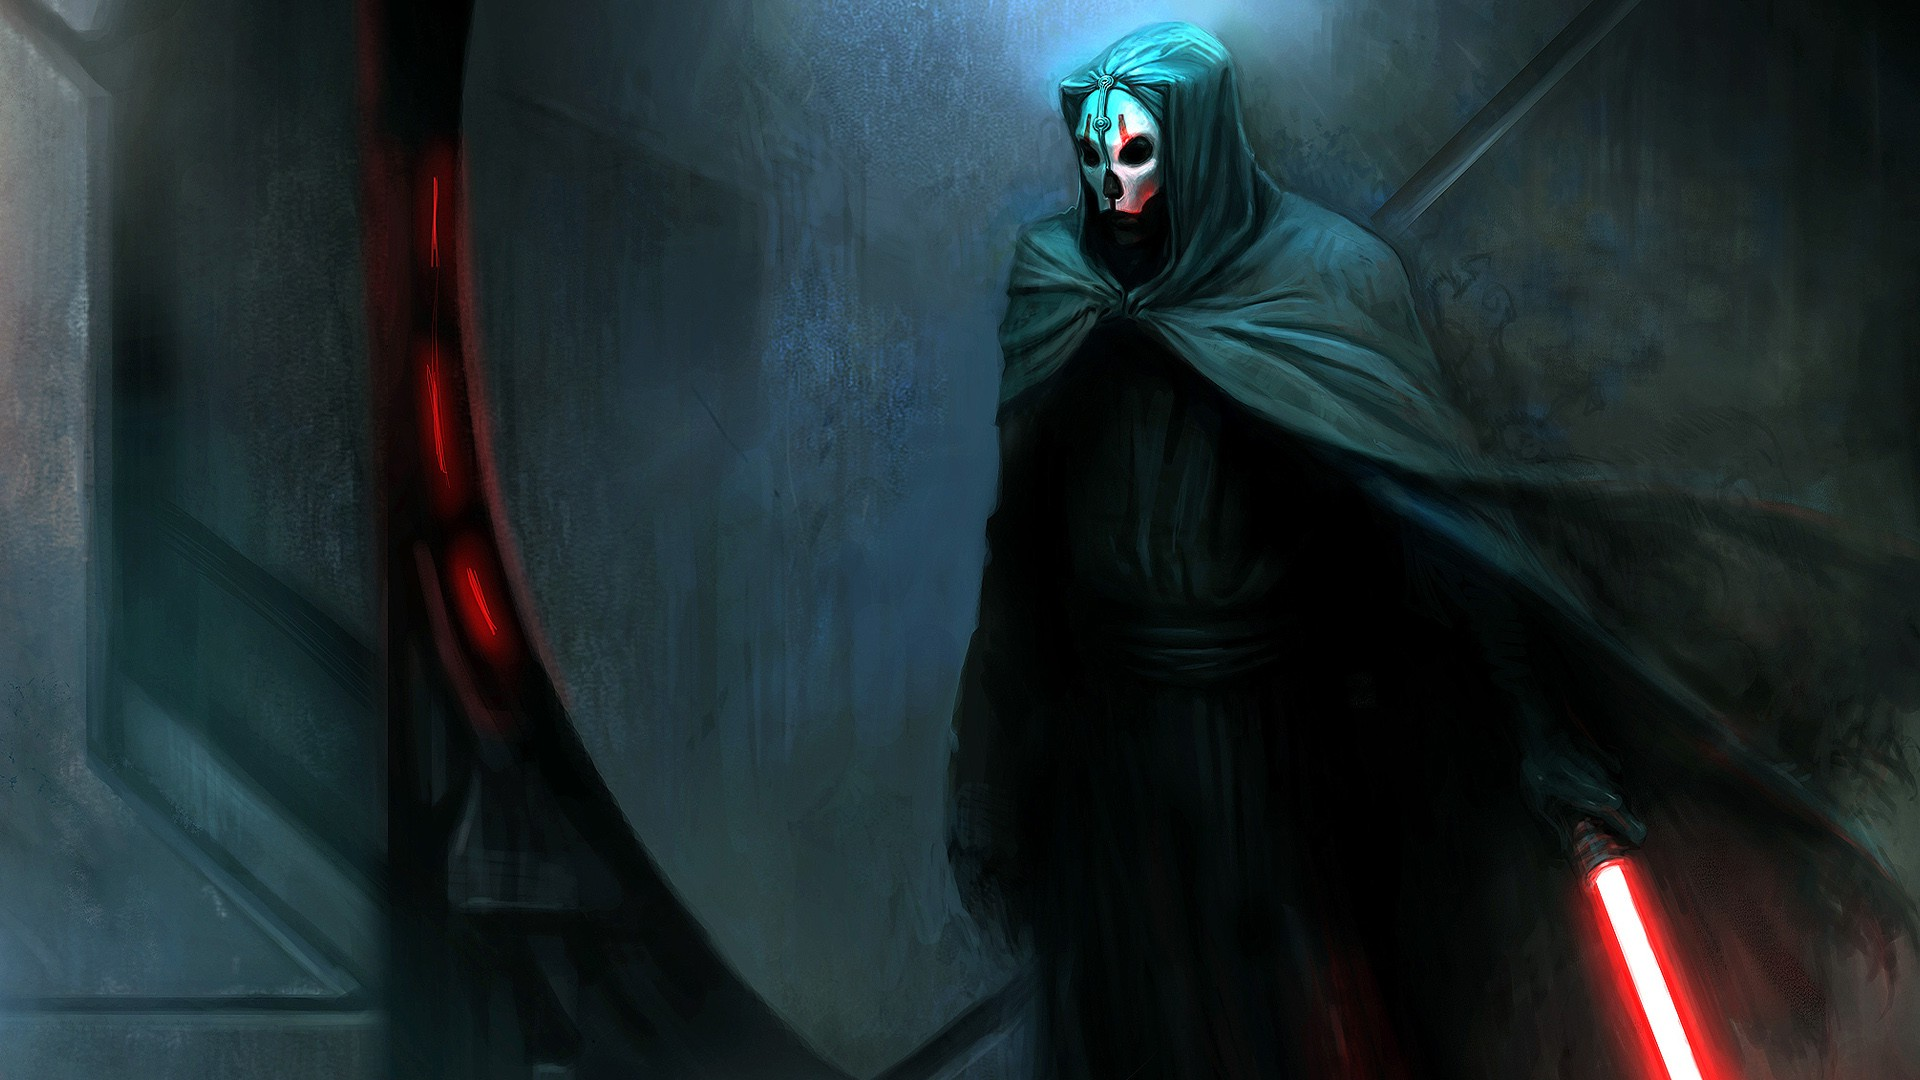 Star Wars Sith 1600×900 Wallpapers Background Is Cool Wallpapers